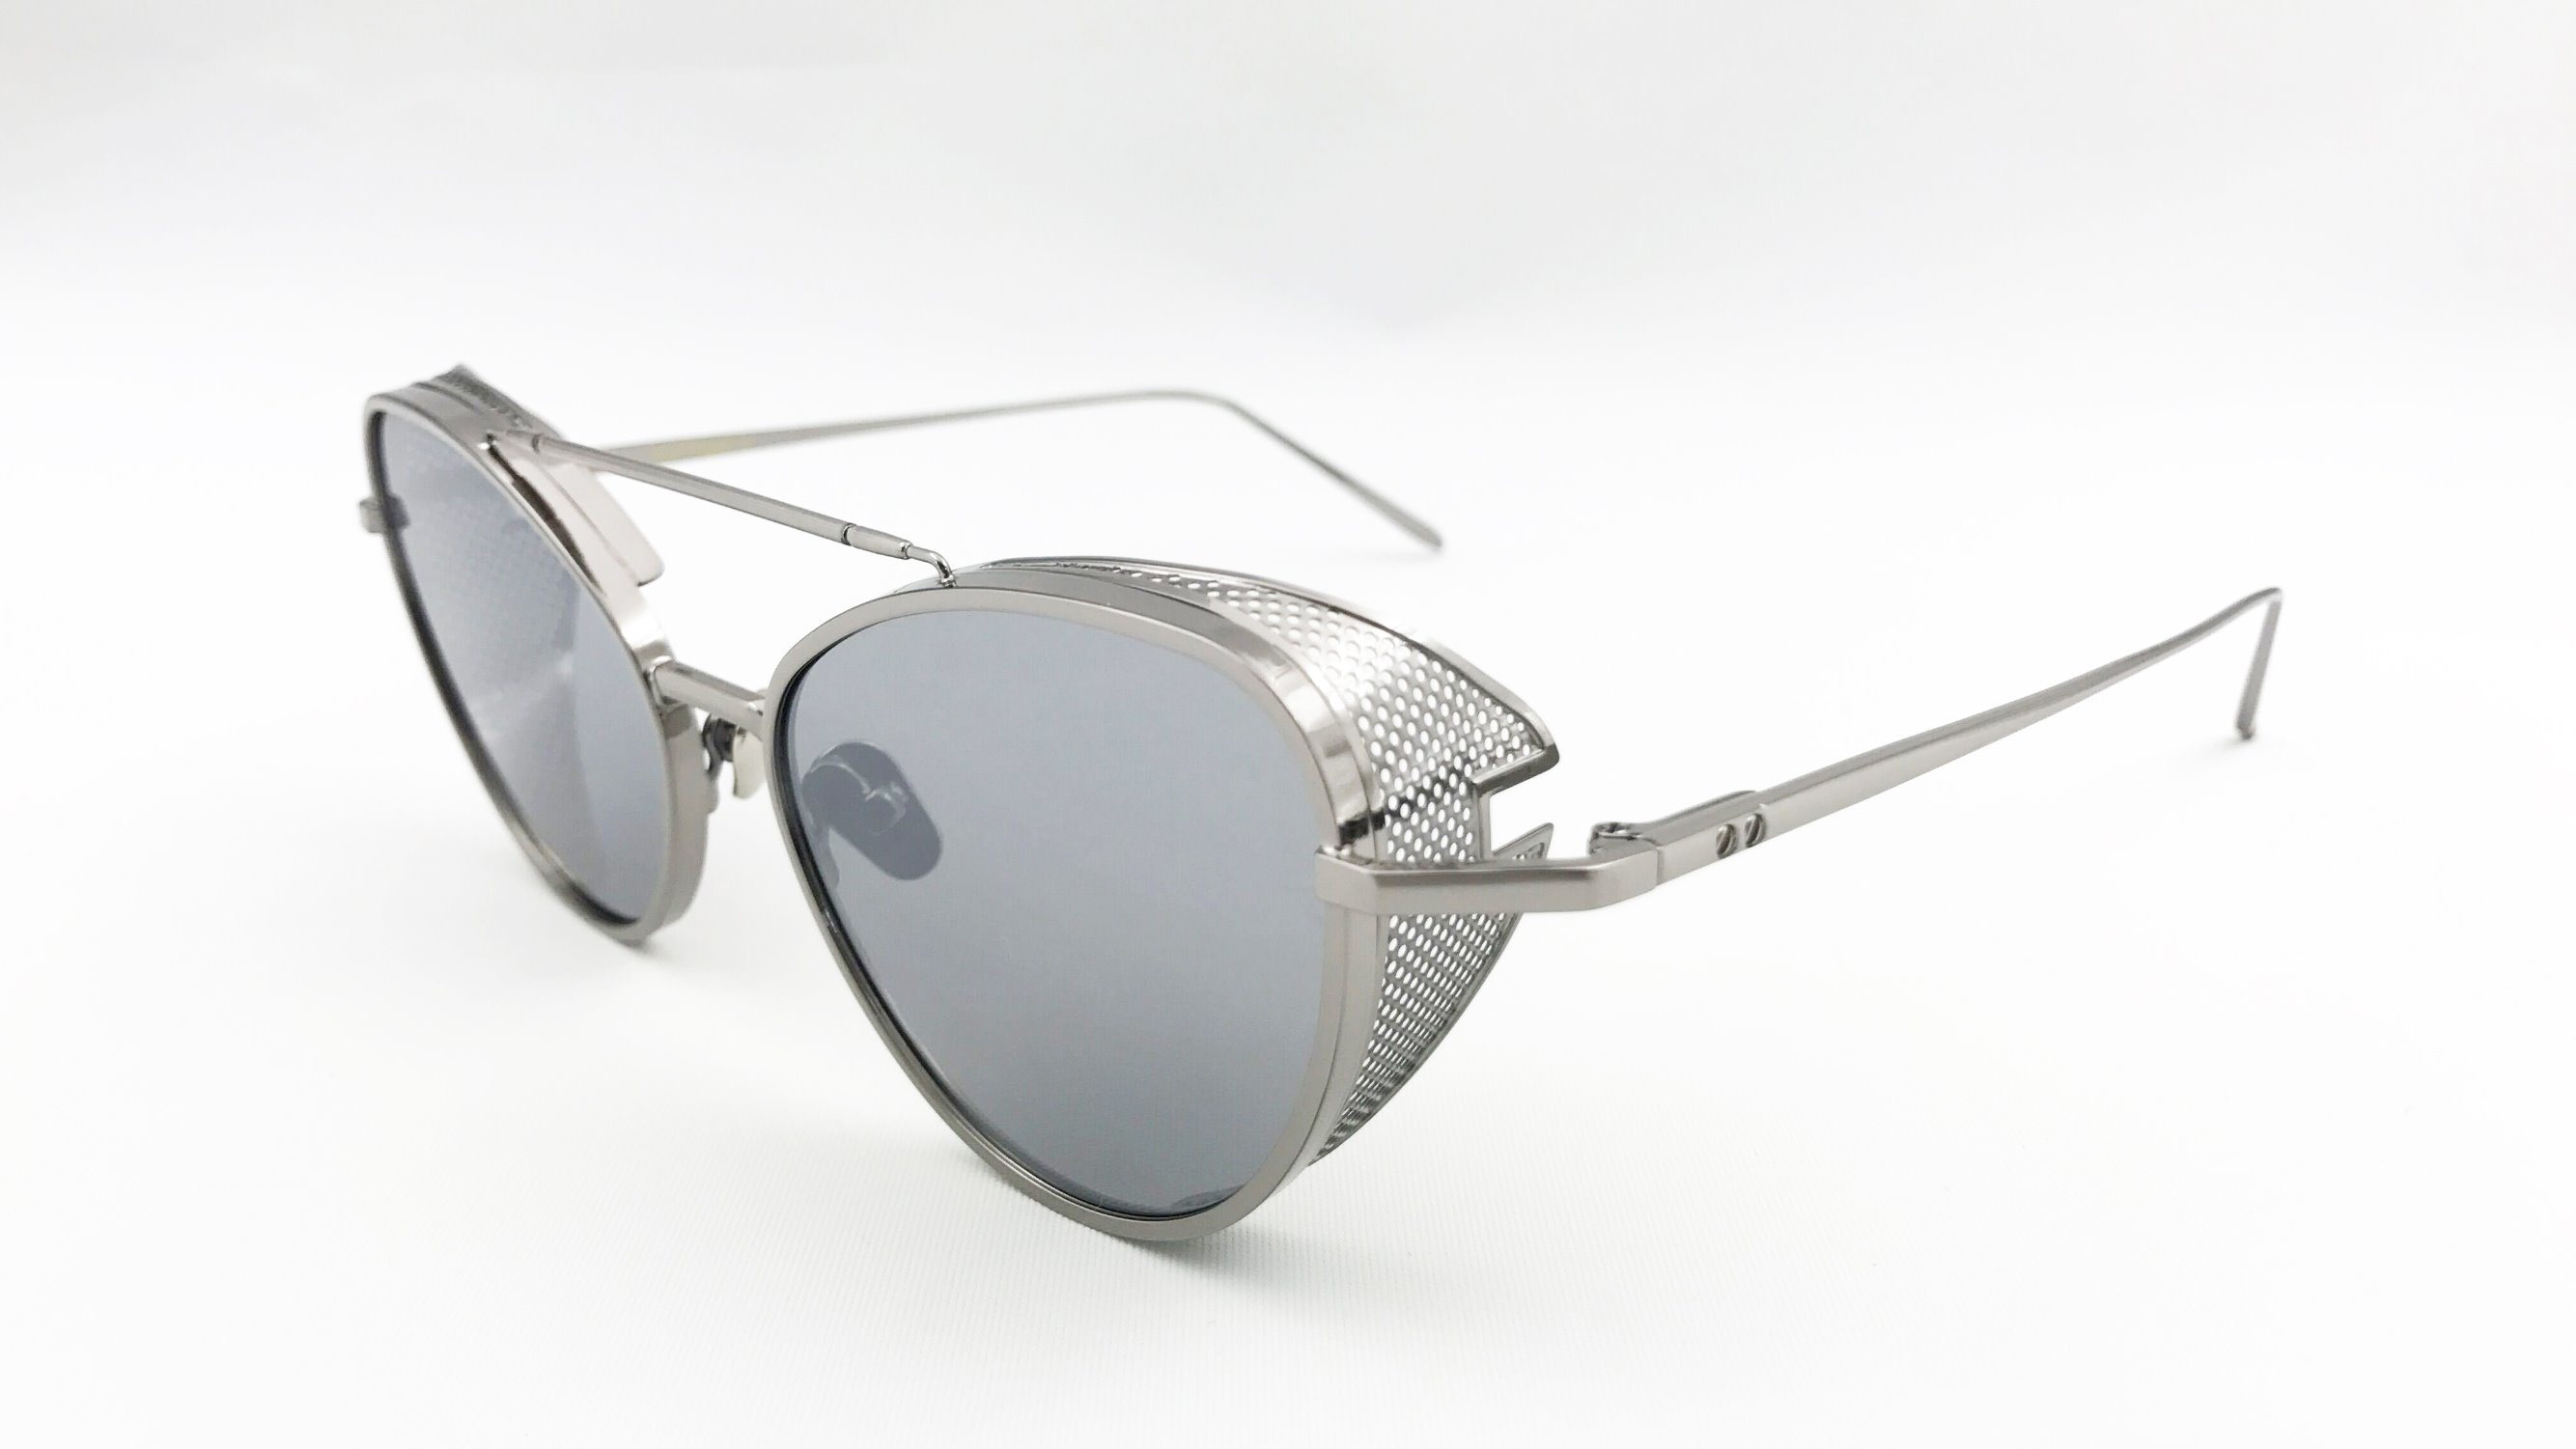 Gentle Monster Popular Style, Metal Sunglasses with Nylon Lens. Eh1612